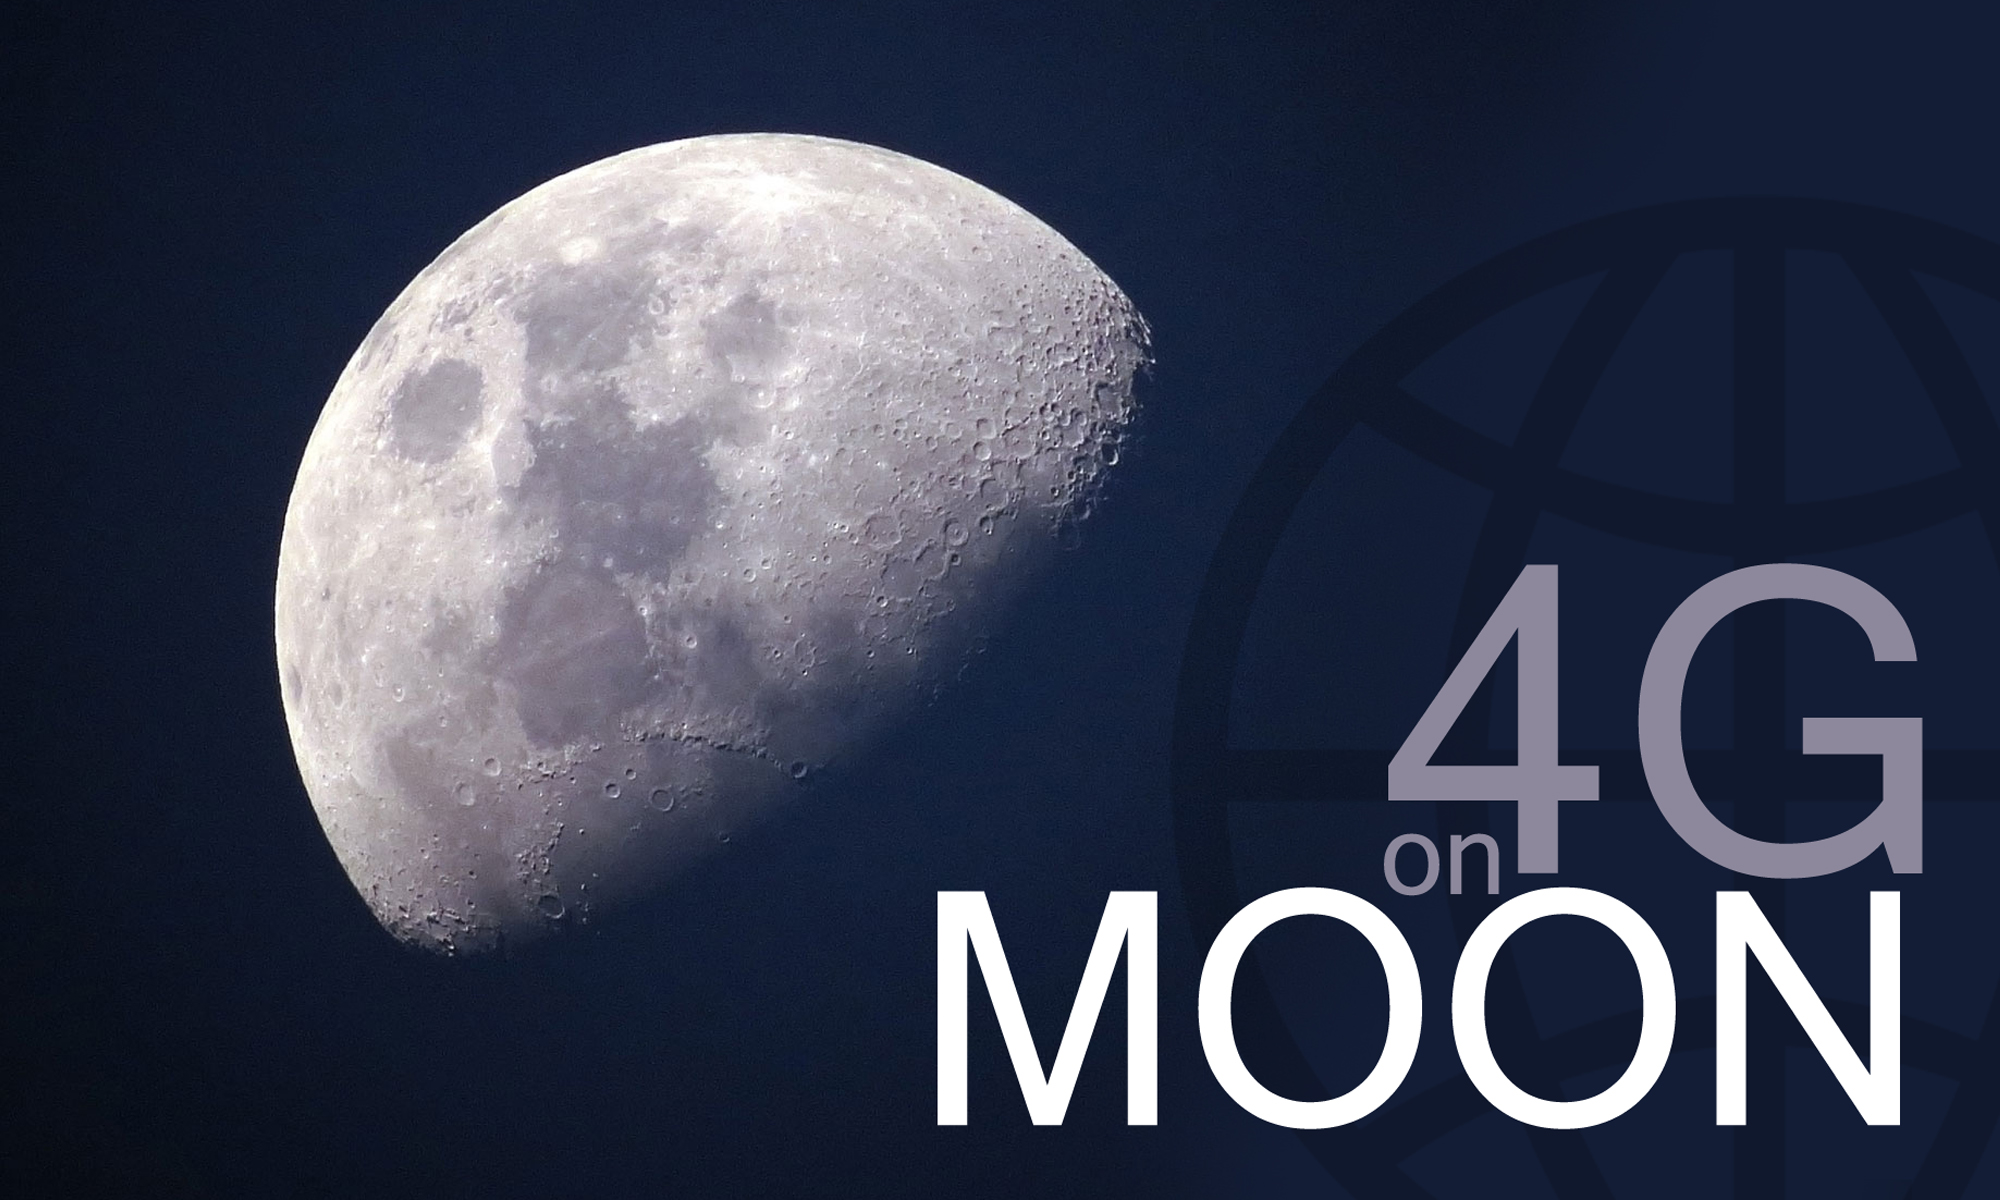 Mobile communications across the moon in 2019 1